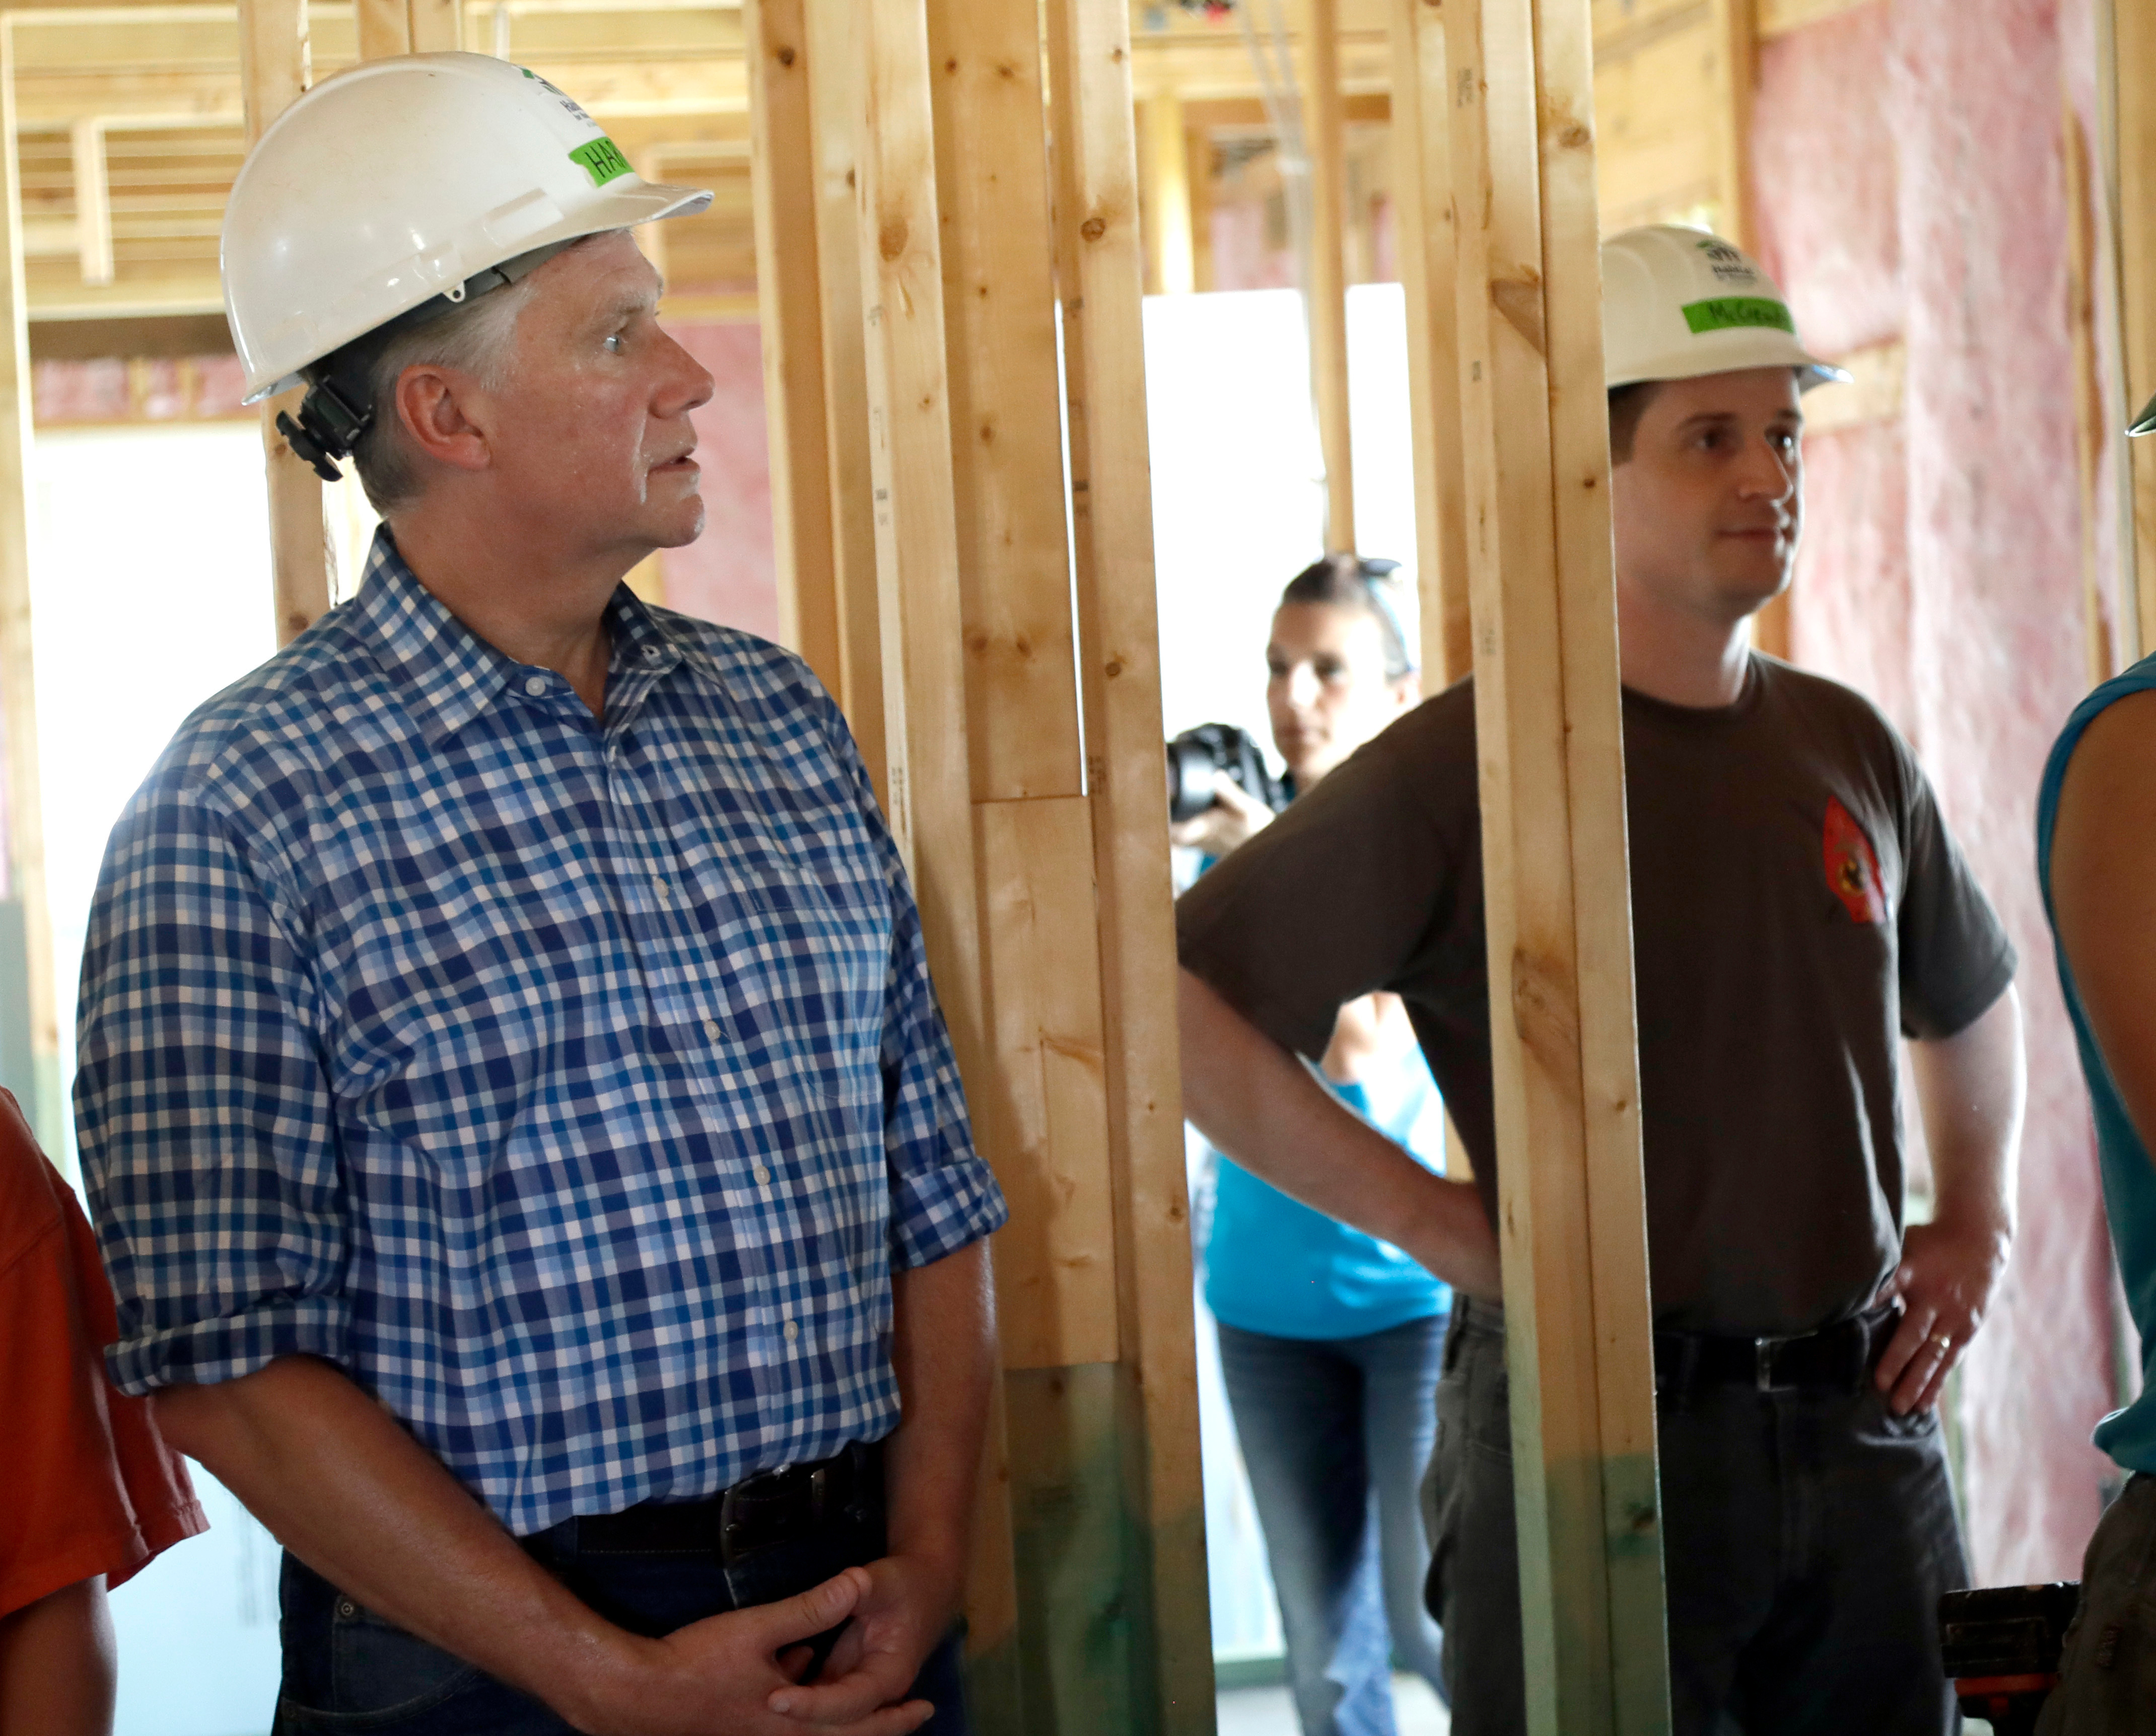 Republican Mark Harris, left, and democrat Dan McCready, right, listen to instructions during a Habitat For Humanity building event in Charlotte, N.C. Harris and McCready are running against each other for the 9th Congressional District                     Election which is still undecided as of Dec. 5, 2018.